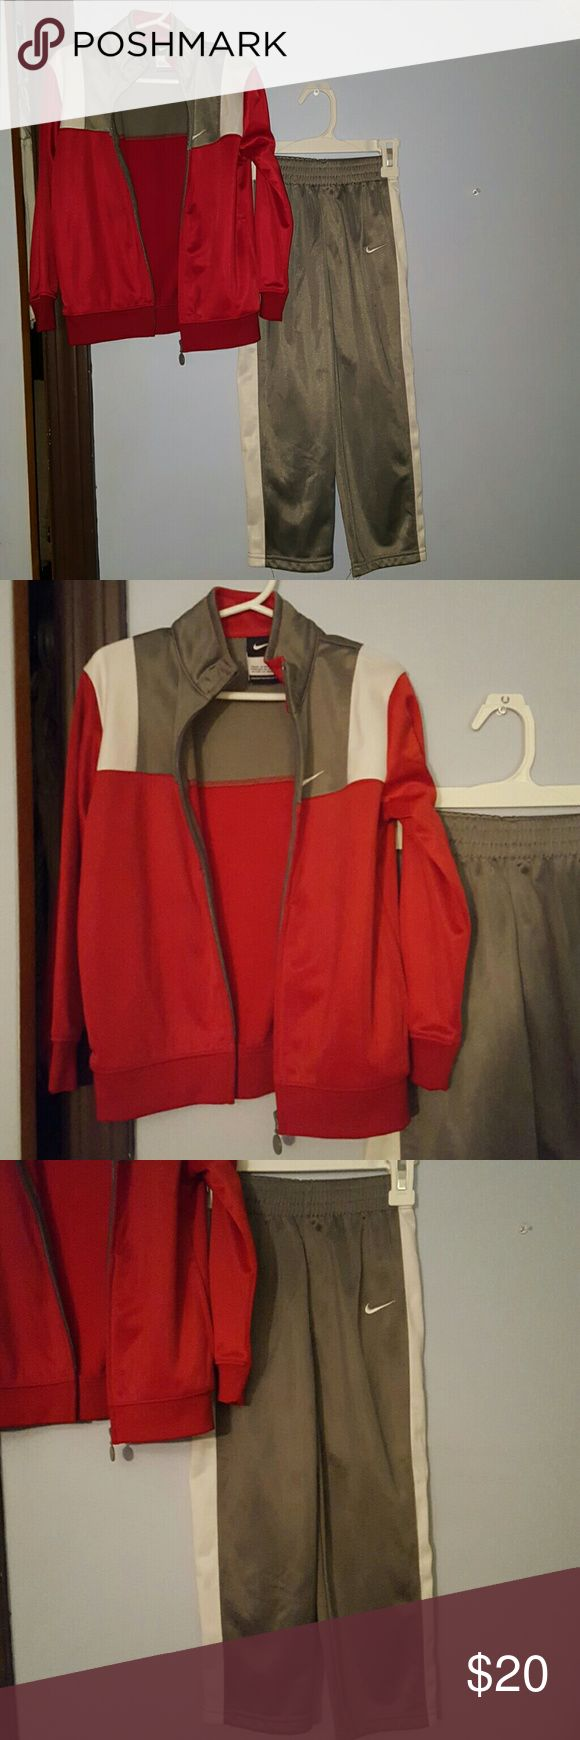 Kids Collection Nike sweat suits, red gray and white. Front zipper closure on the jacket and elastic waist on the pants. Nike Matching Sets